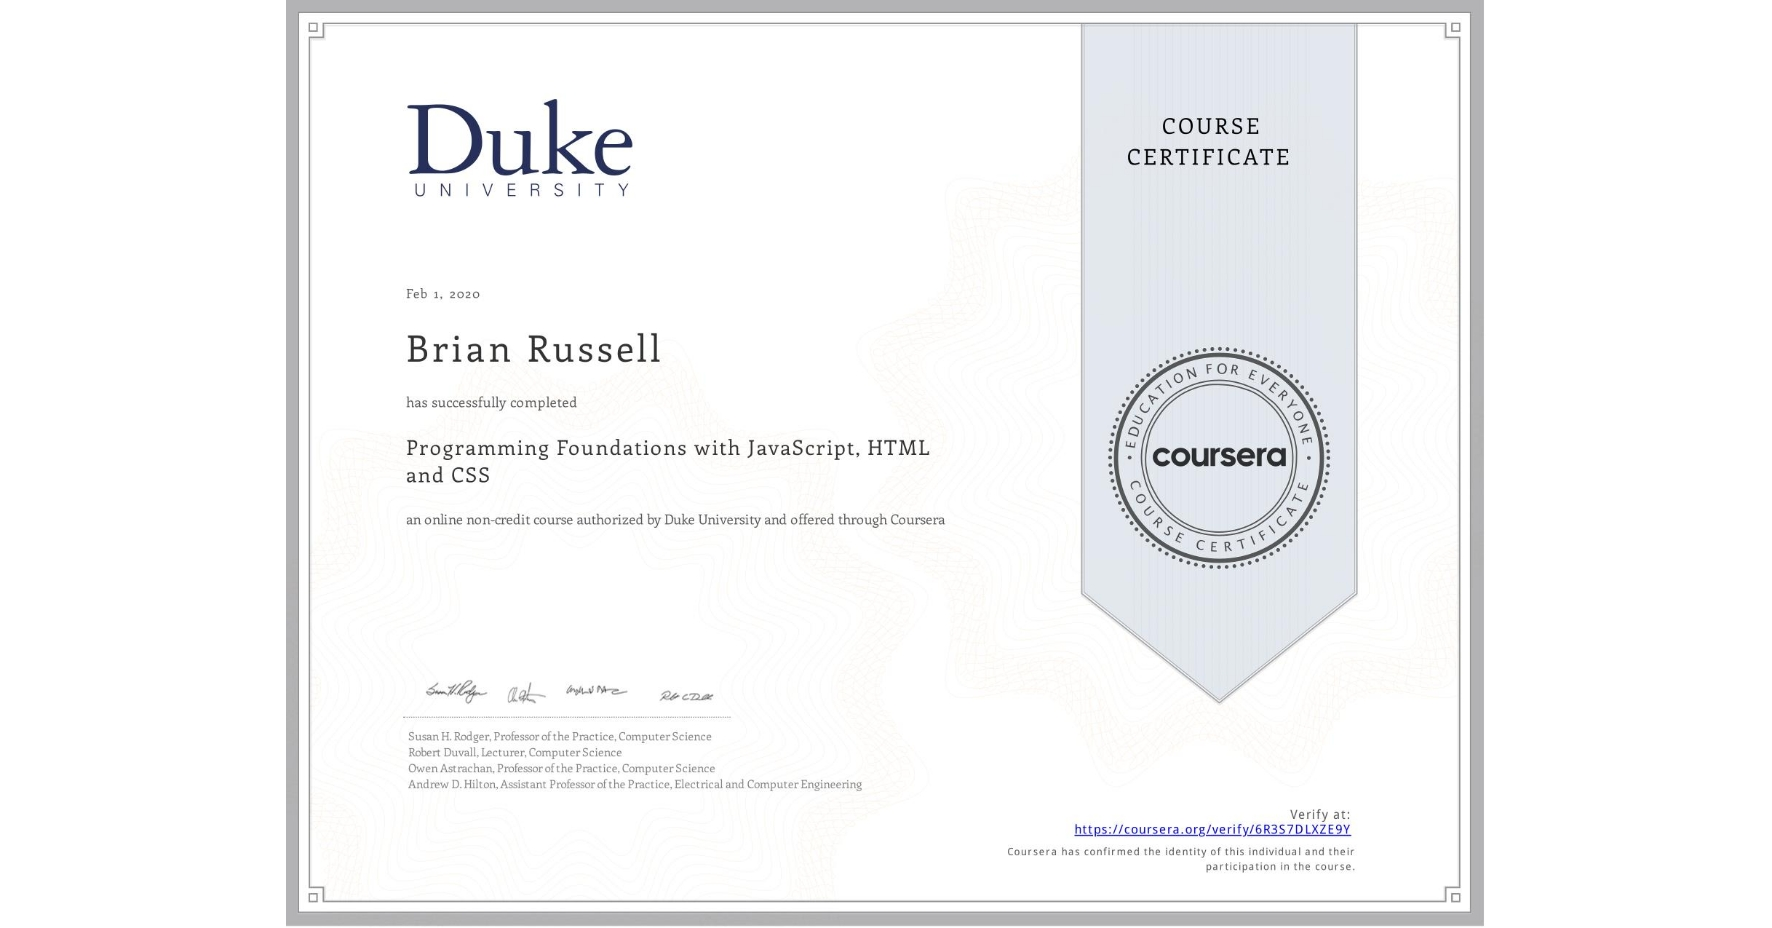 View certificate for Brian Russell, Programming Foundations with JavaScript, HTML and CSS, an online non-credit course authorized by Duke University and offered through Coursera